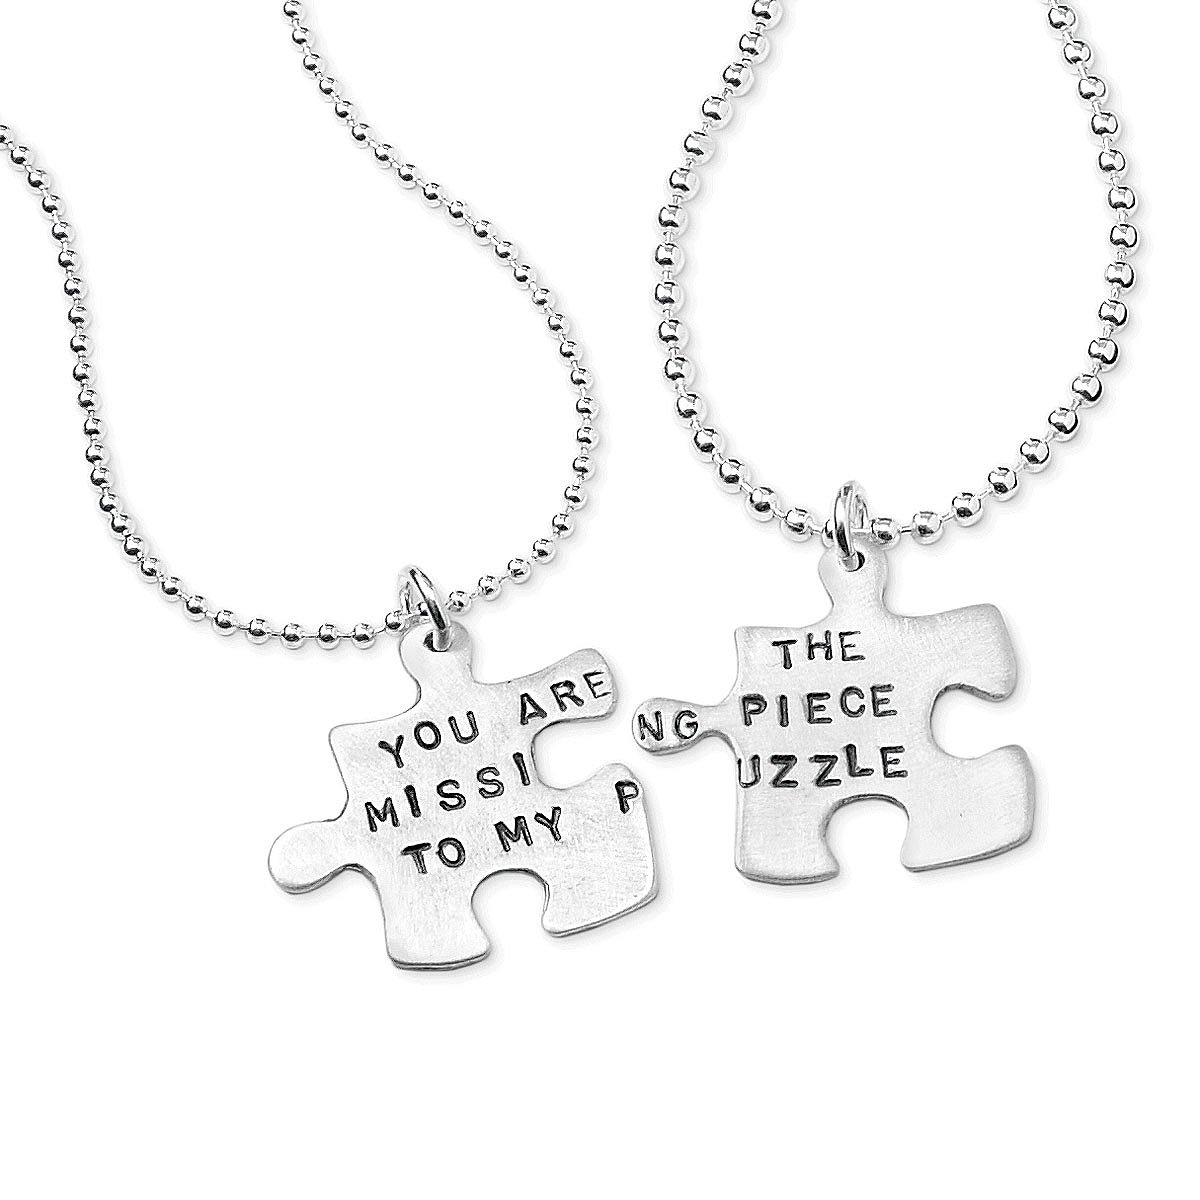 plated necklace neckalce sis long big item friendship pendant anti heart sister necklaces jewelry lil jinse letter color print pendent from gold in puzzle